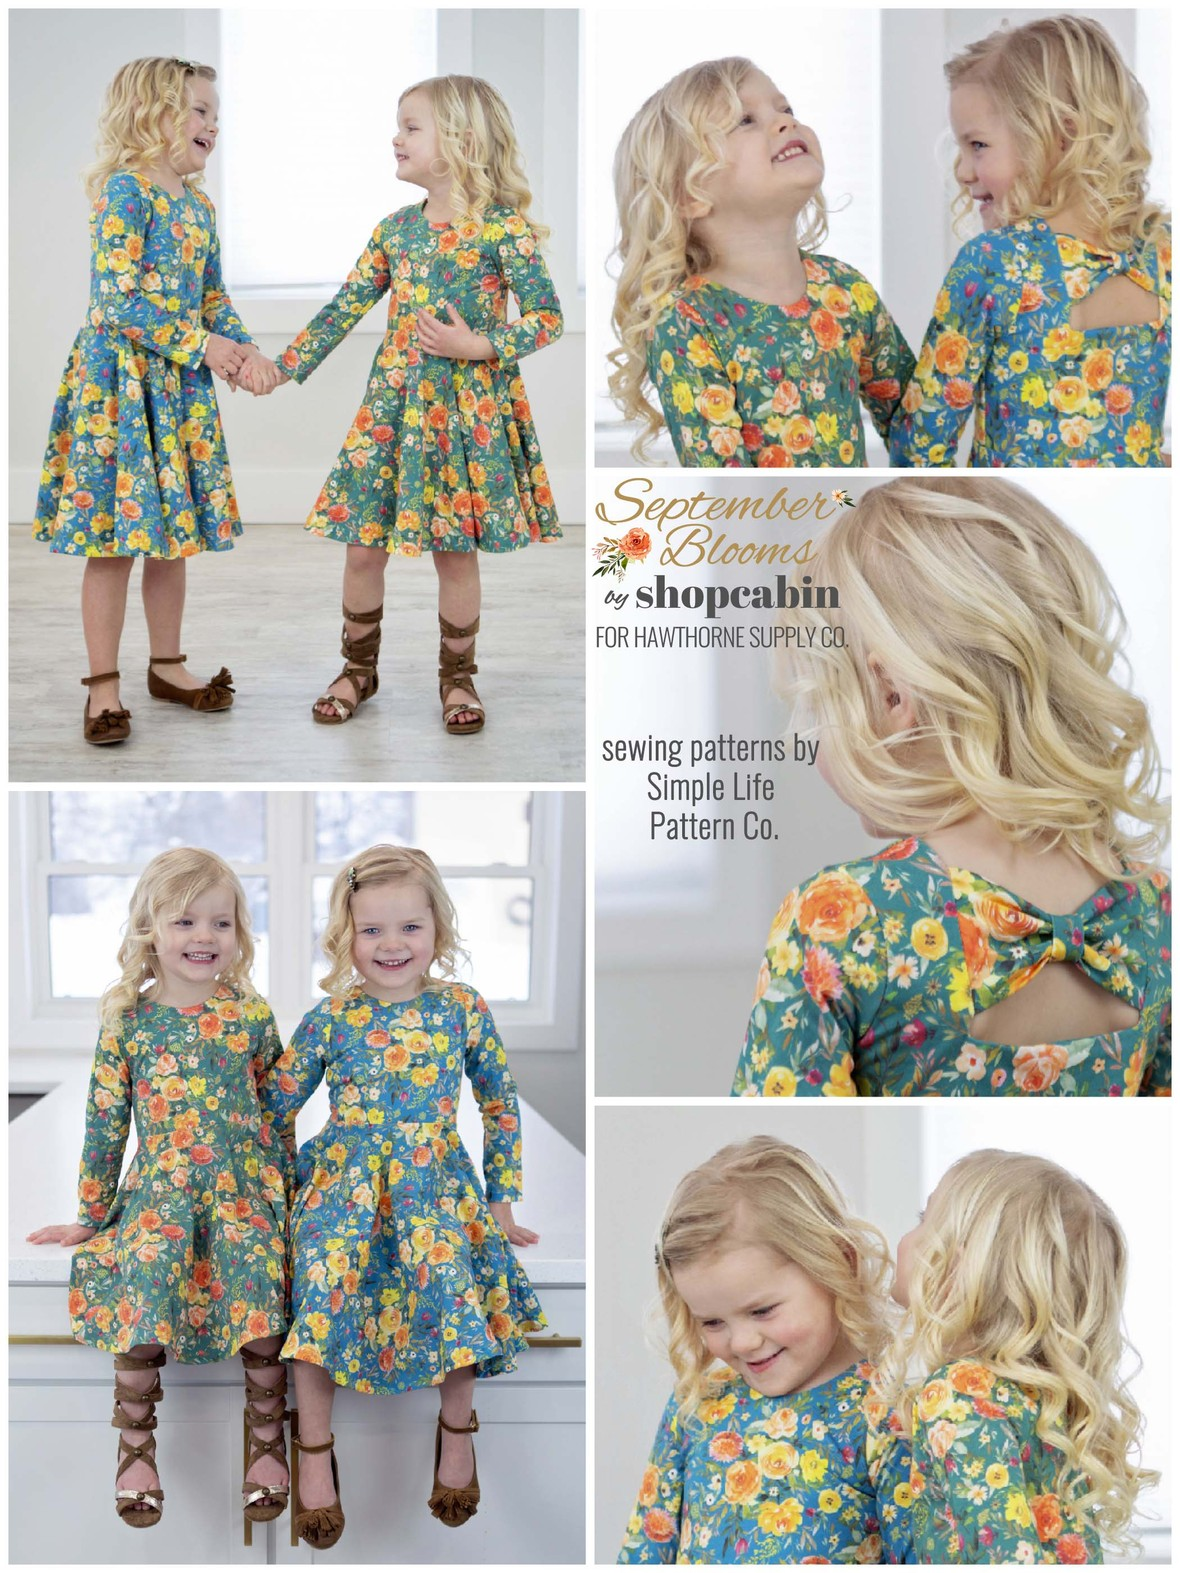 September Blooms Simple Lilfe Pattern Company and Hawthorne Supply Co